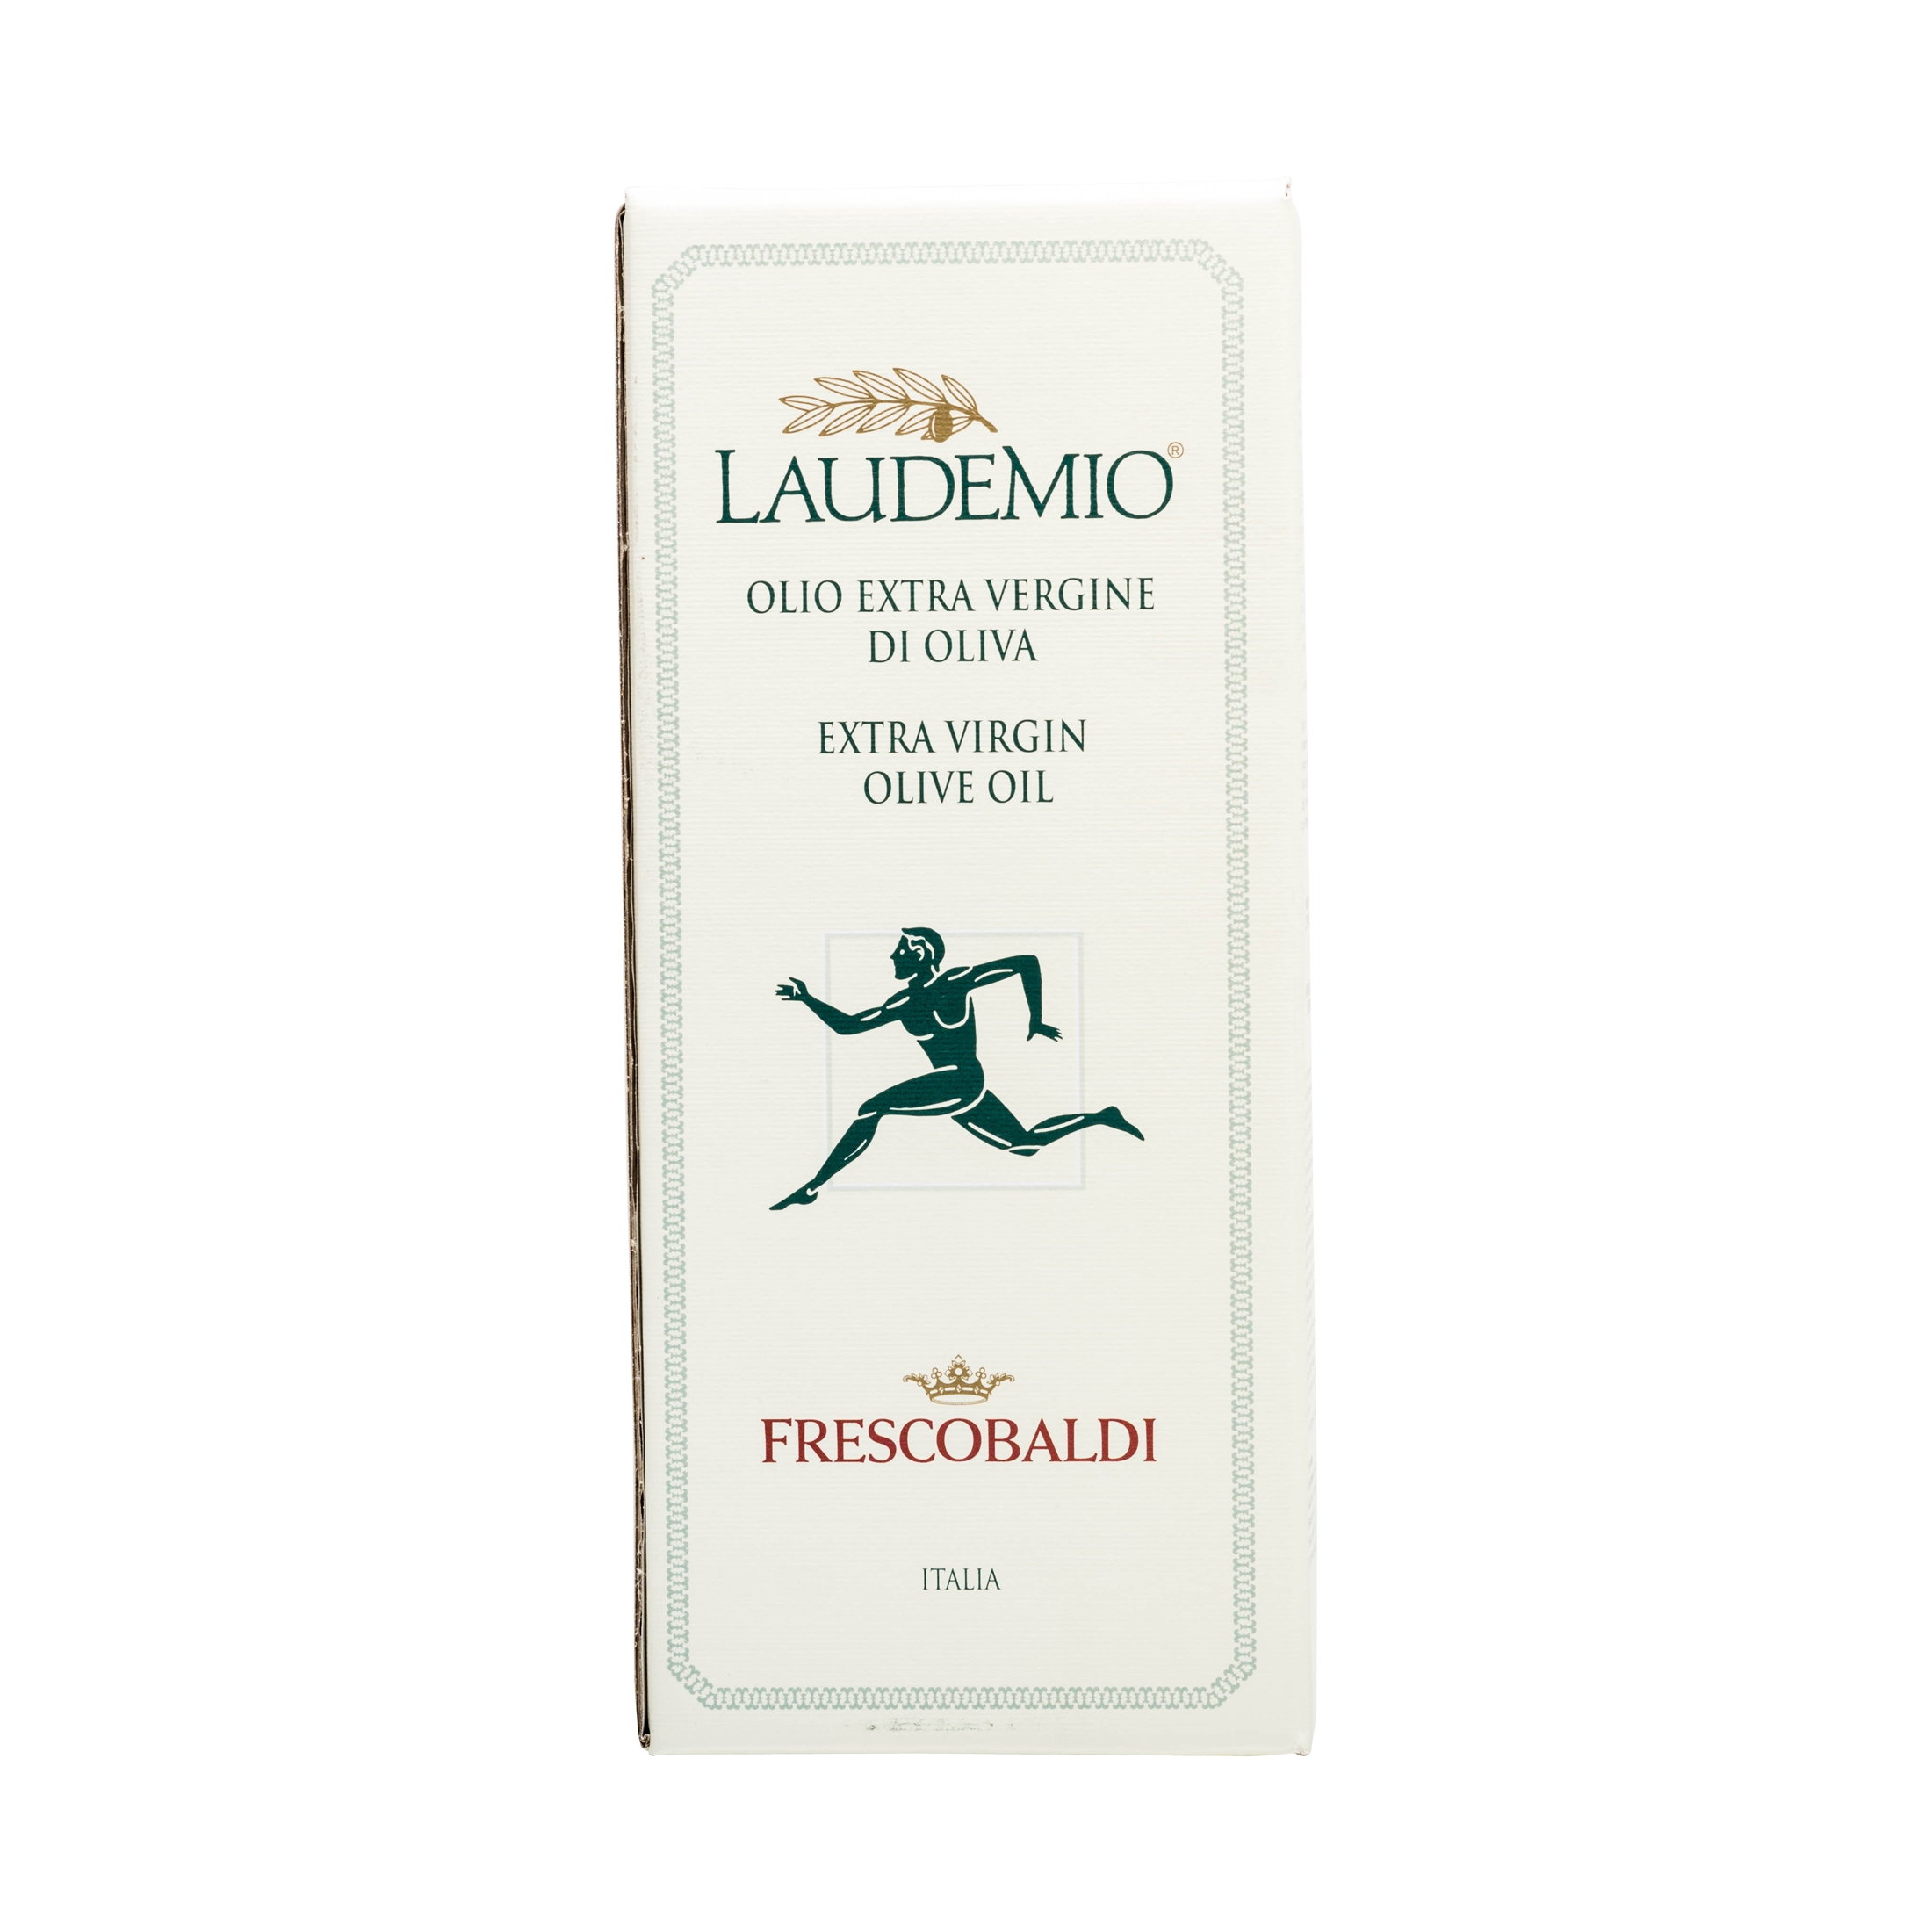 LAUDEMIO EXTRA VIRGIN OLIVE OIL